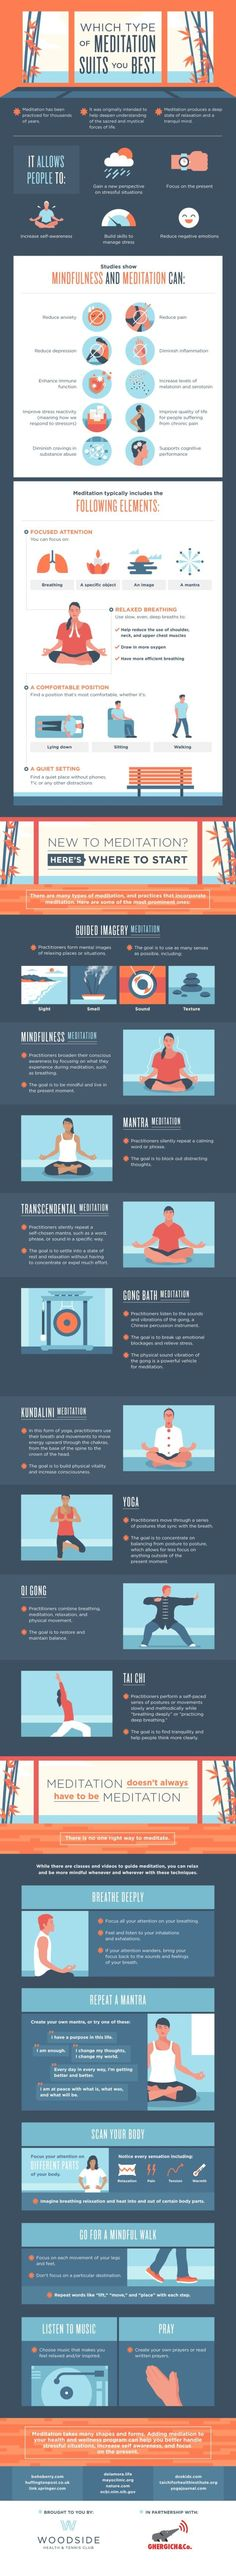 15 Types of Meditation - Many of these meditation practices are suitable for use in your every day life - you'll discover that not all meditation requires you to be still, in silence or sitting cross legged!